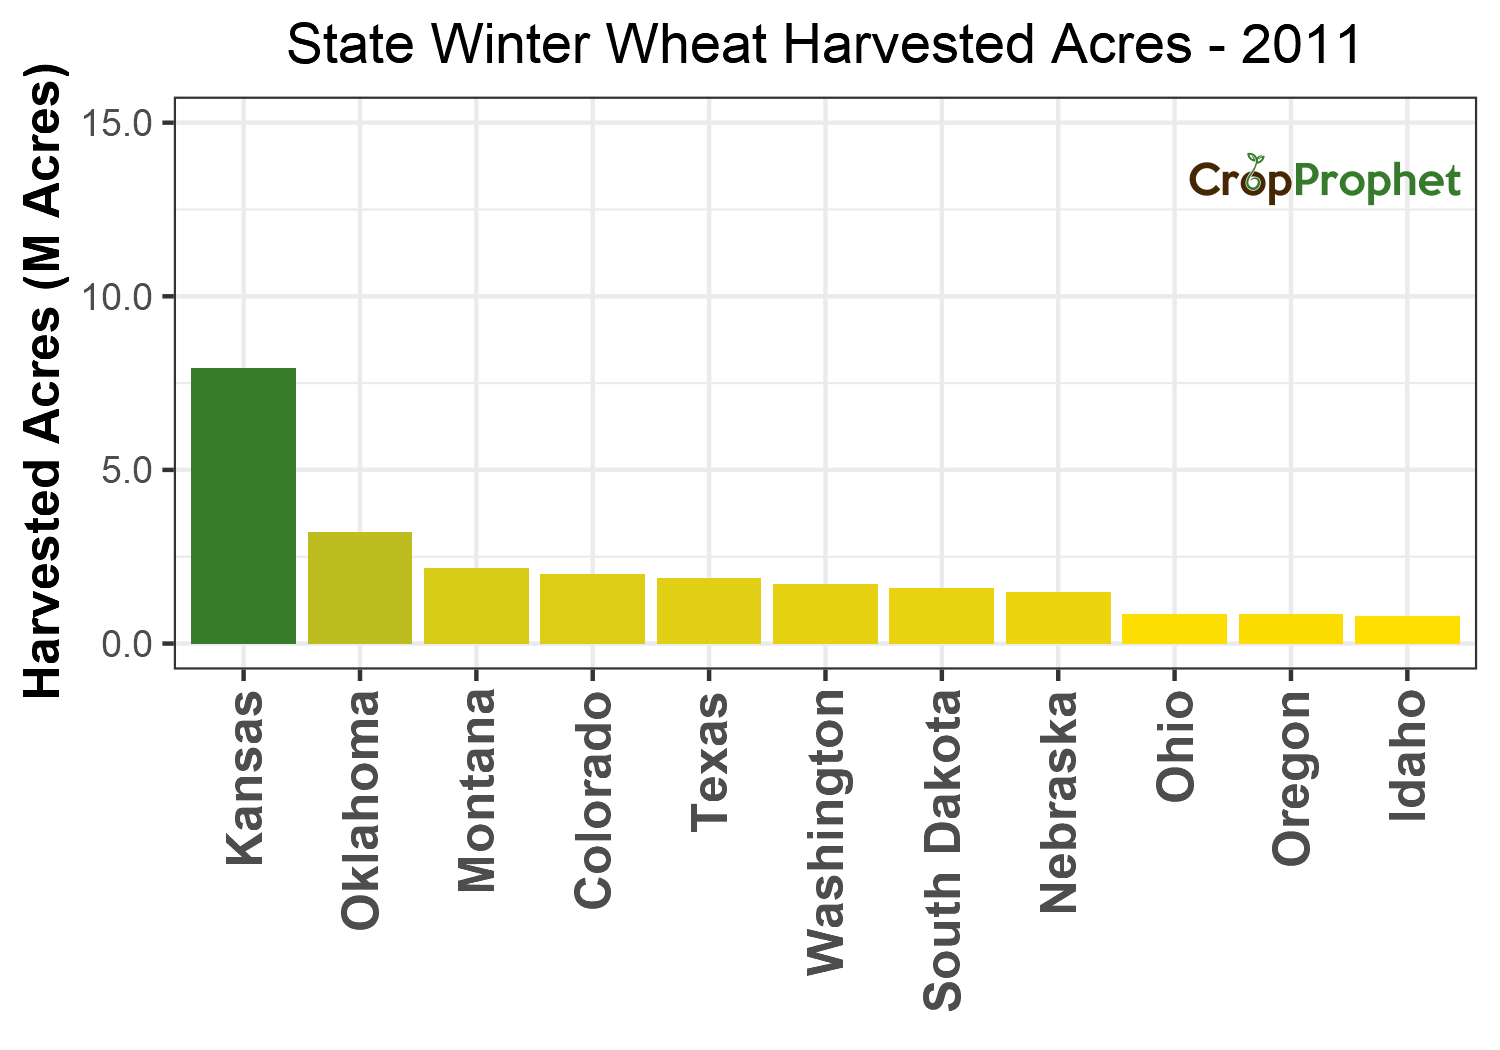 Winter wheat Harvested Acres by State - 2011 Rankings